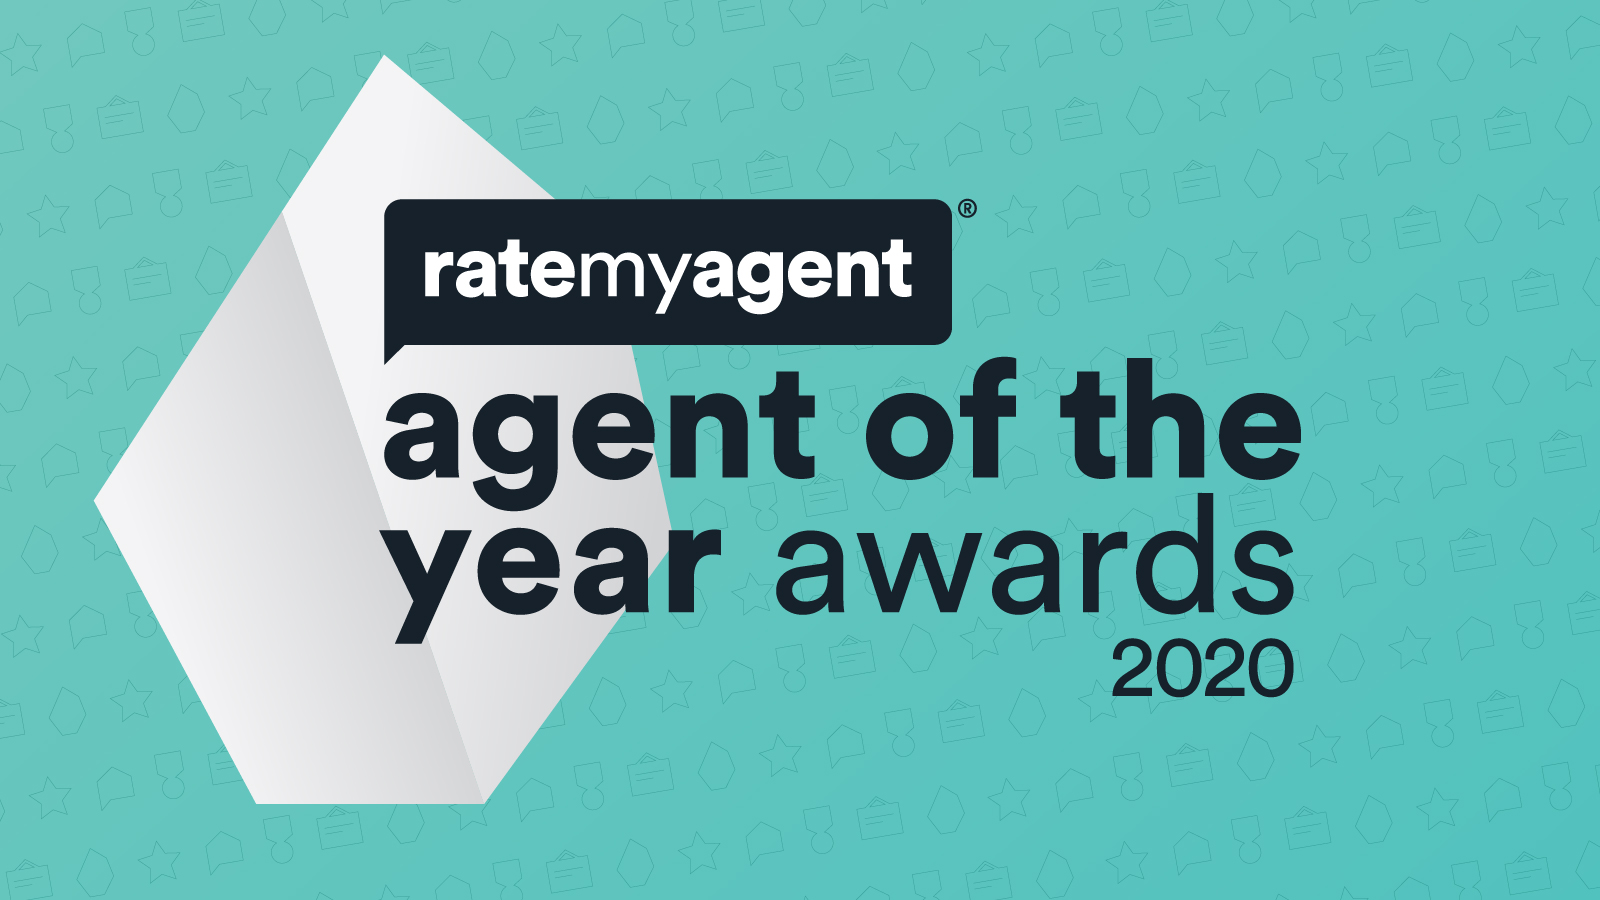 RateMyAgent Agent of the Year Awards 2020 – 3 months to go!